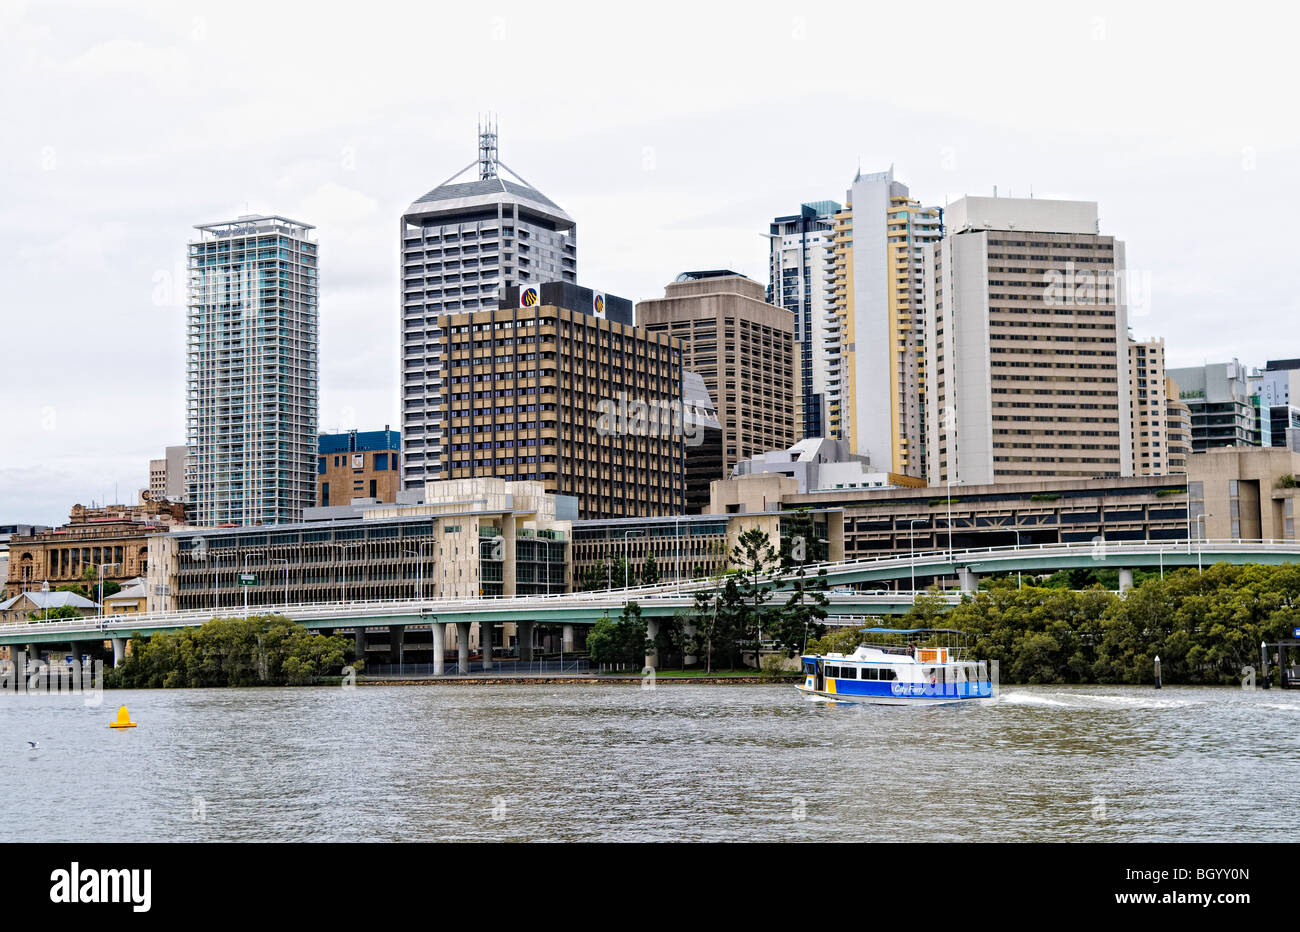 BRISBANE, Australia - Brisbane River and city skyline as seen from Southbank with the distinctive Southeast Freeway - Stock Image